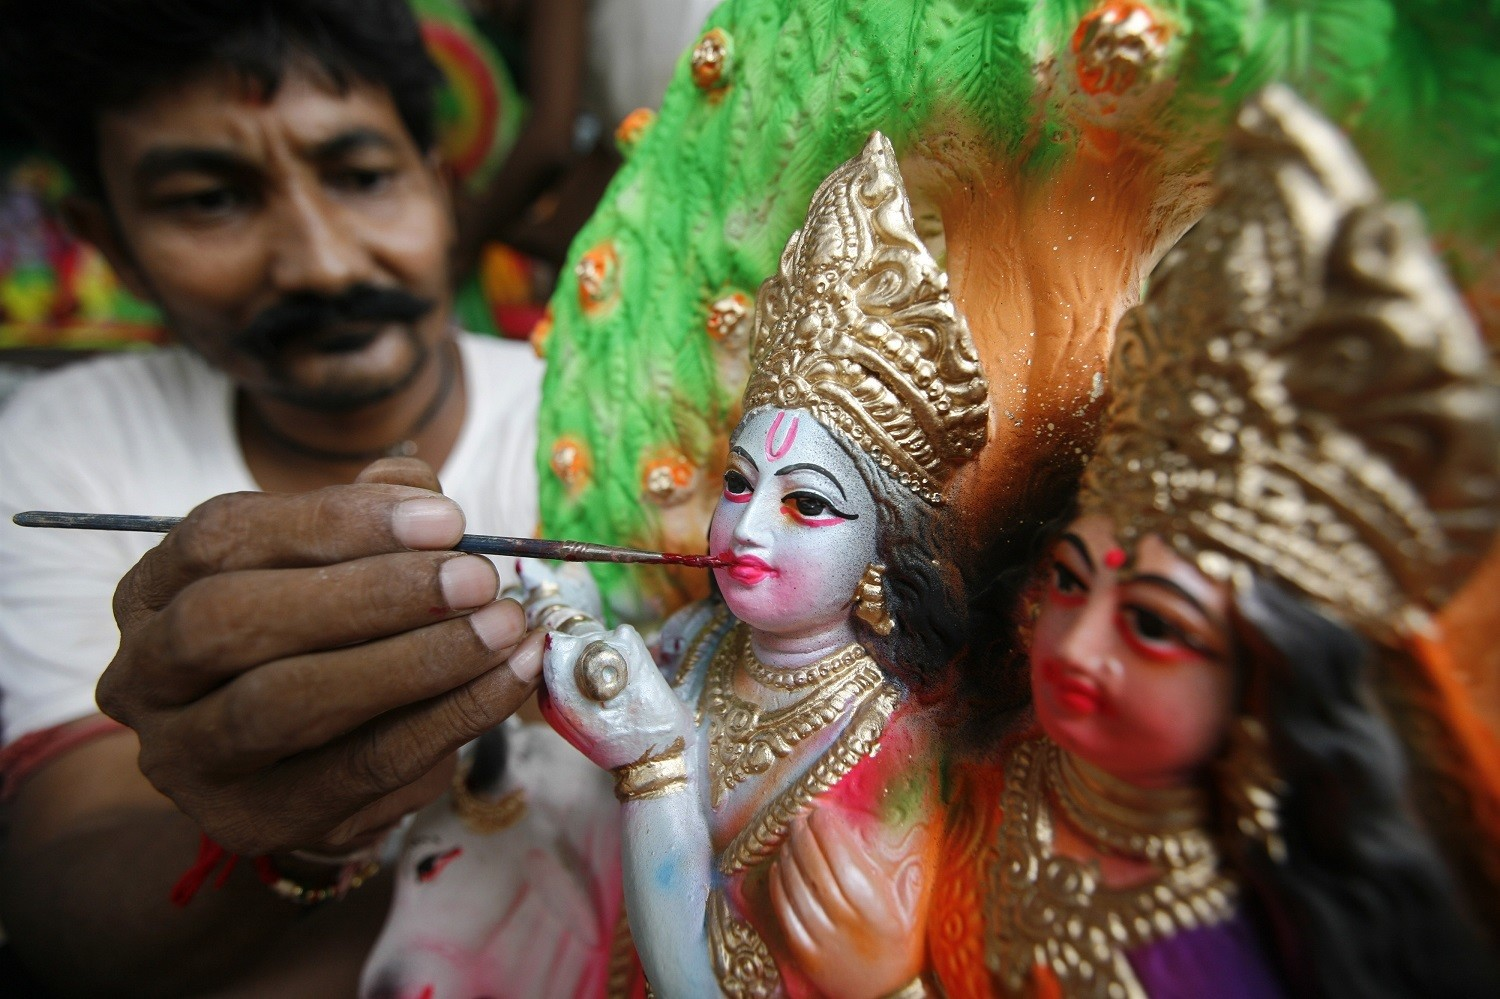 """An artisan paints an idol of the Hindu Lord Krishna ahead of """"Janamashtmi"""", at a roadside workshop in the western Indian city of Ahmedabad August 28, 2010. The idols will be displayed in temples on the occasion of """"Janamashtmi,"""" the birth anniversary of Lord Krishna on September 2. REUTERS/Amit Dave (INDIA - Tags: SOCIETY RELIGION) - GM1E68S1NLX01"""